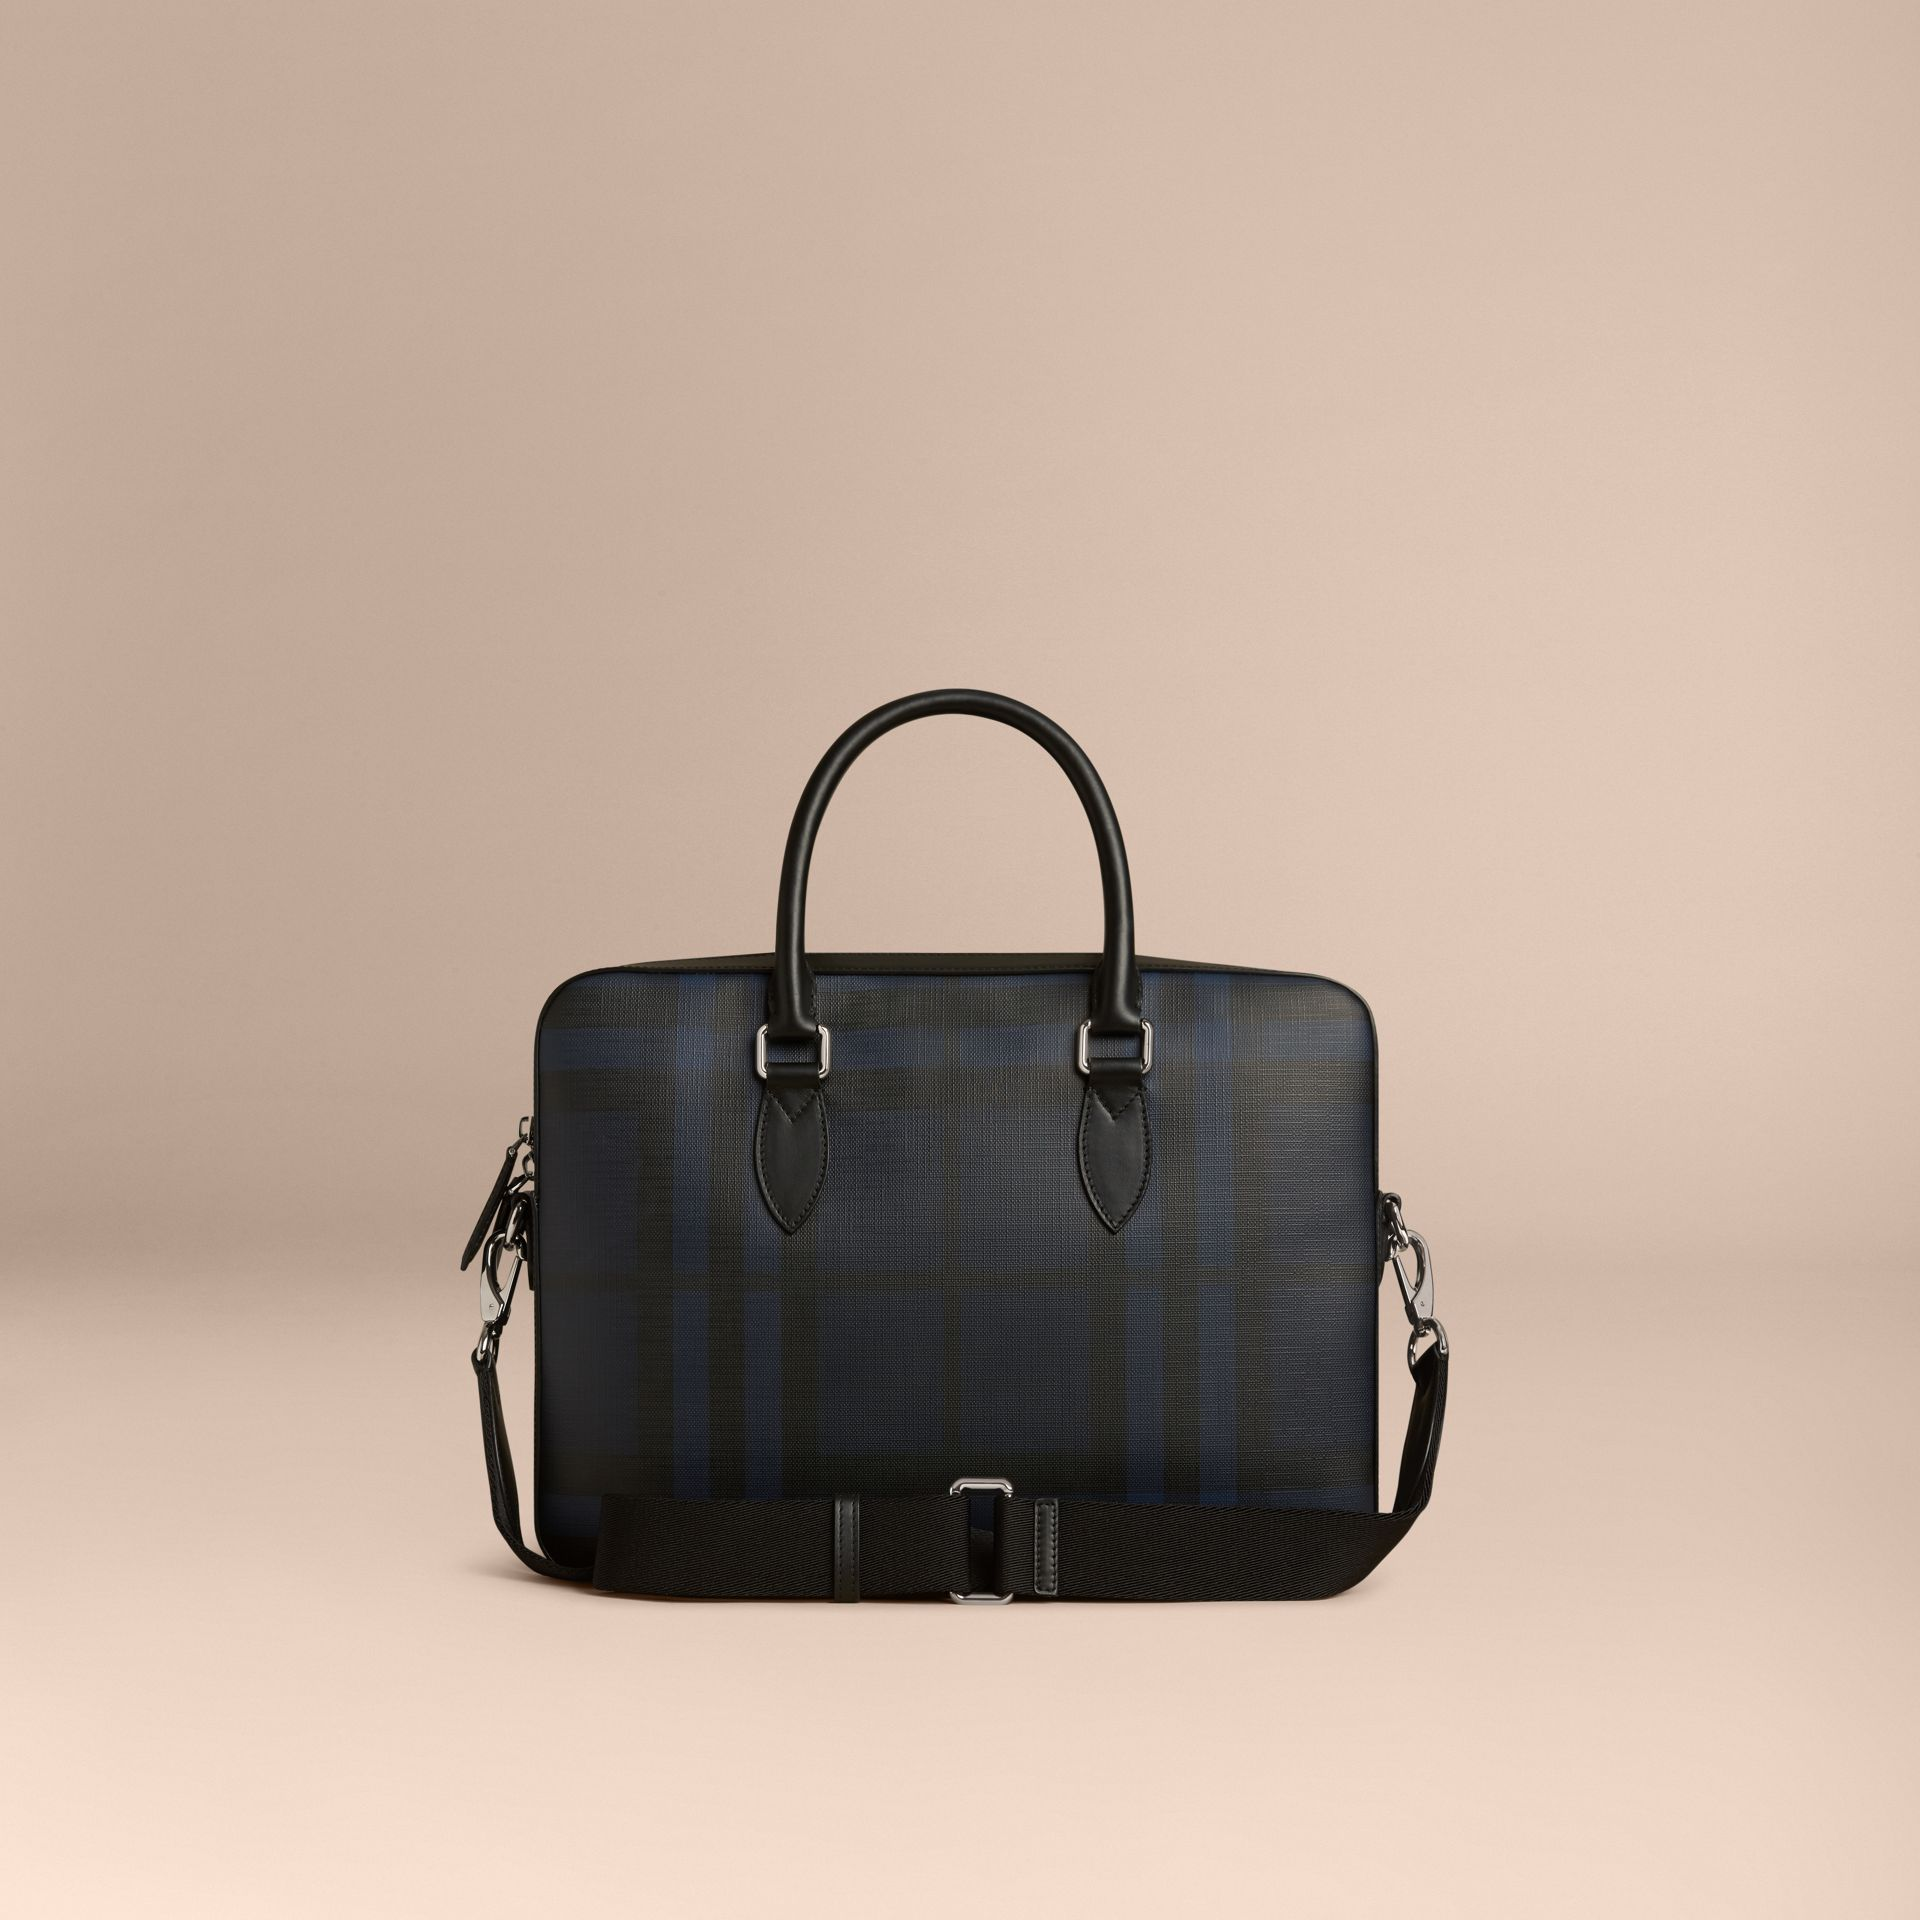 Medium Leather Trim London Check Briefcase in Navy/black - Men | Burberry United Kingdom - gallery image 7